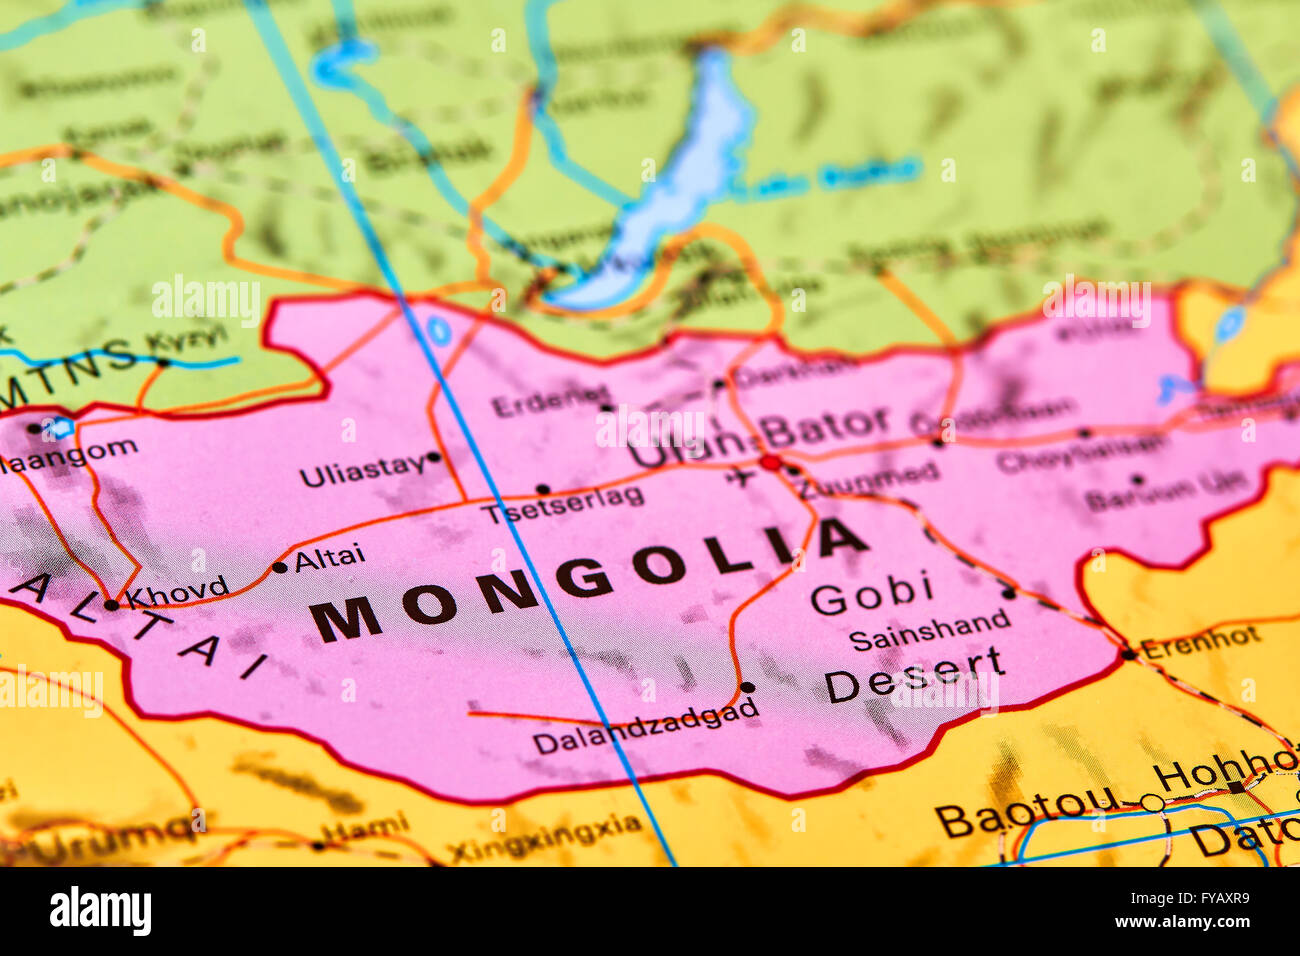 Mongolia country in asia on the world map stock photo royalty mongolia country in asia on the world map gumiabroncs Choice Image